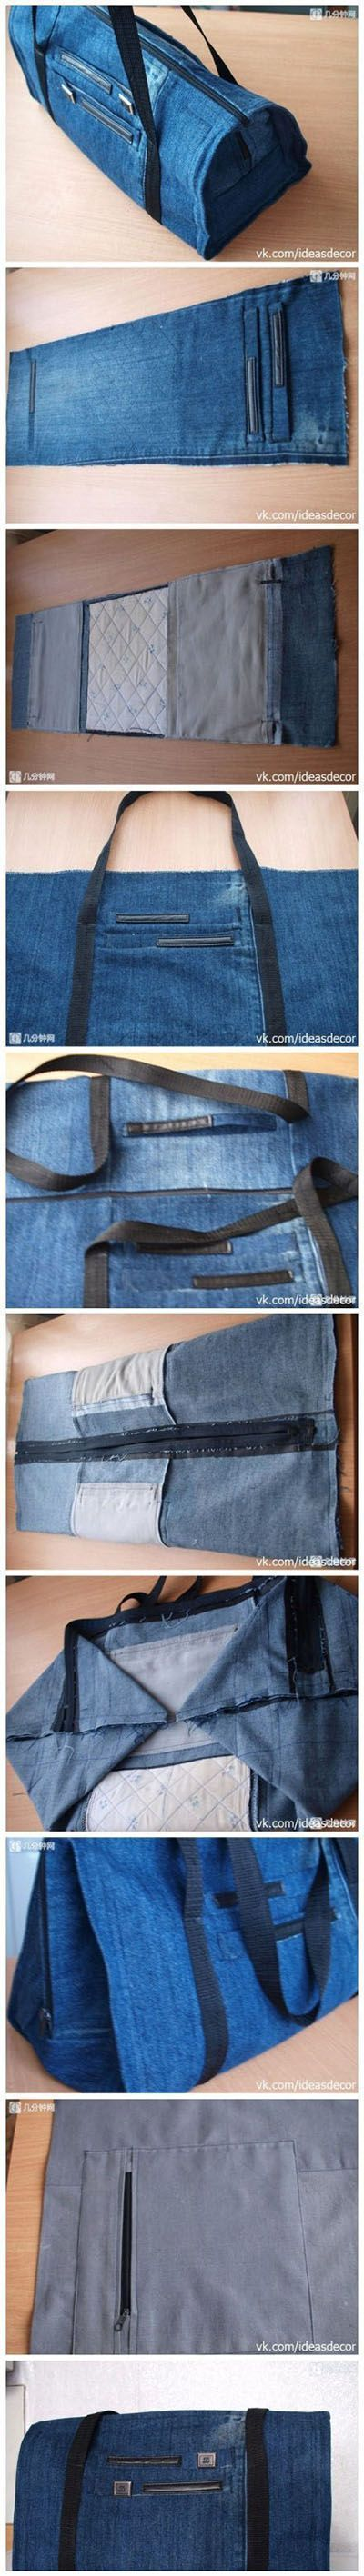 Diy Jean Bag   DIY & Crafts Hoping I can figure this out from the pictures... or have someone else who sews more than I do make it for me! =D